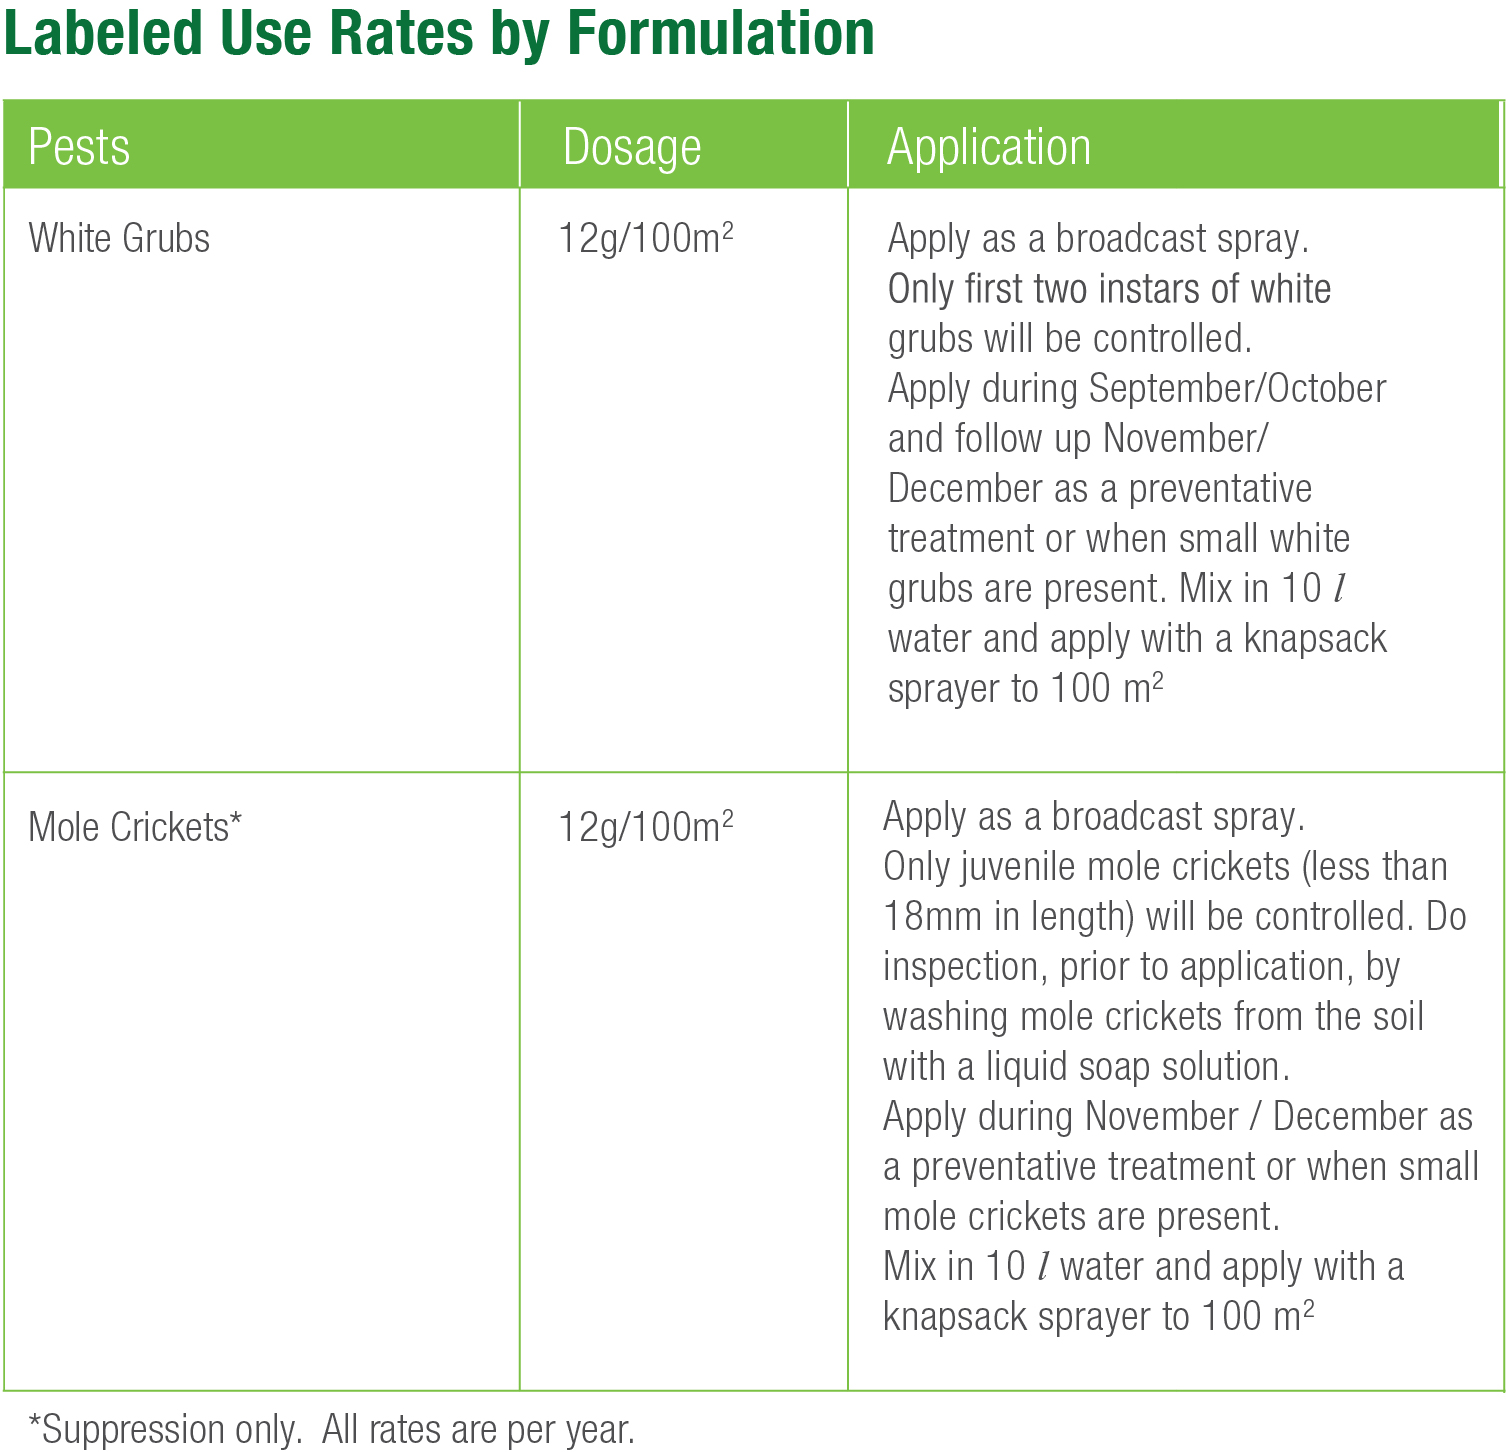 Labelled use rates by formulation